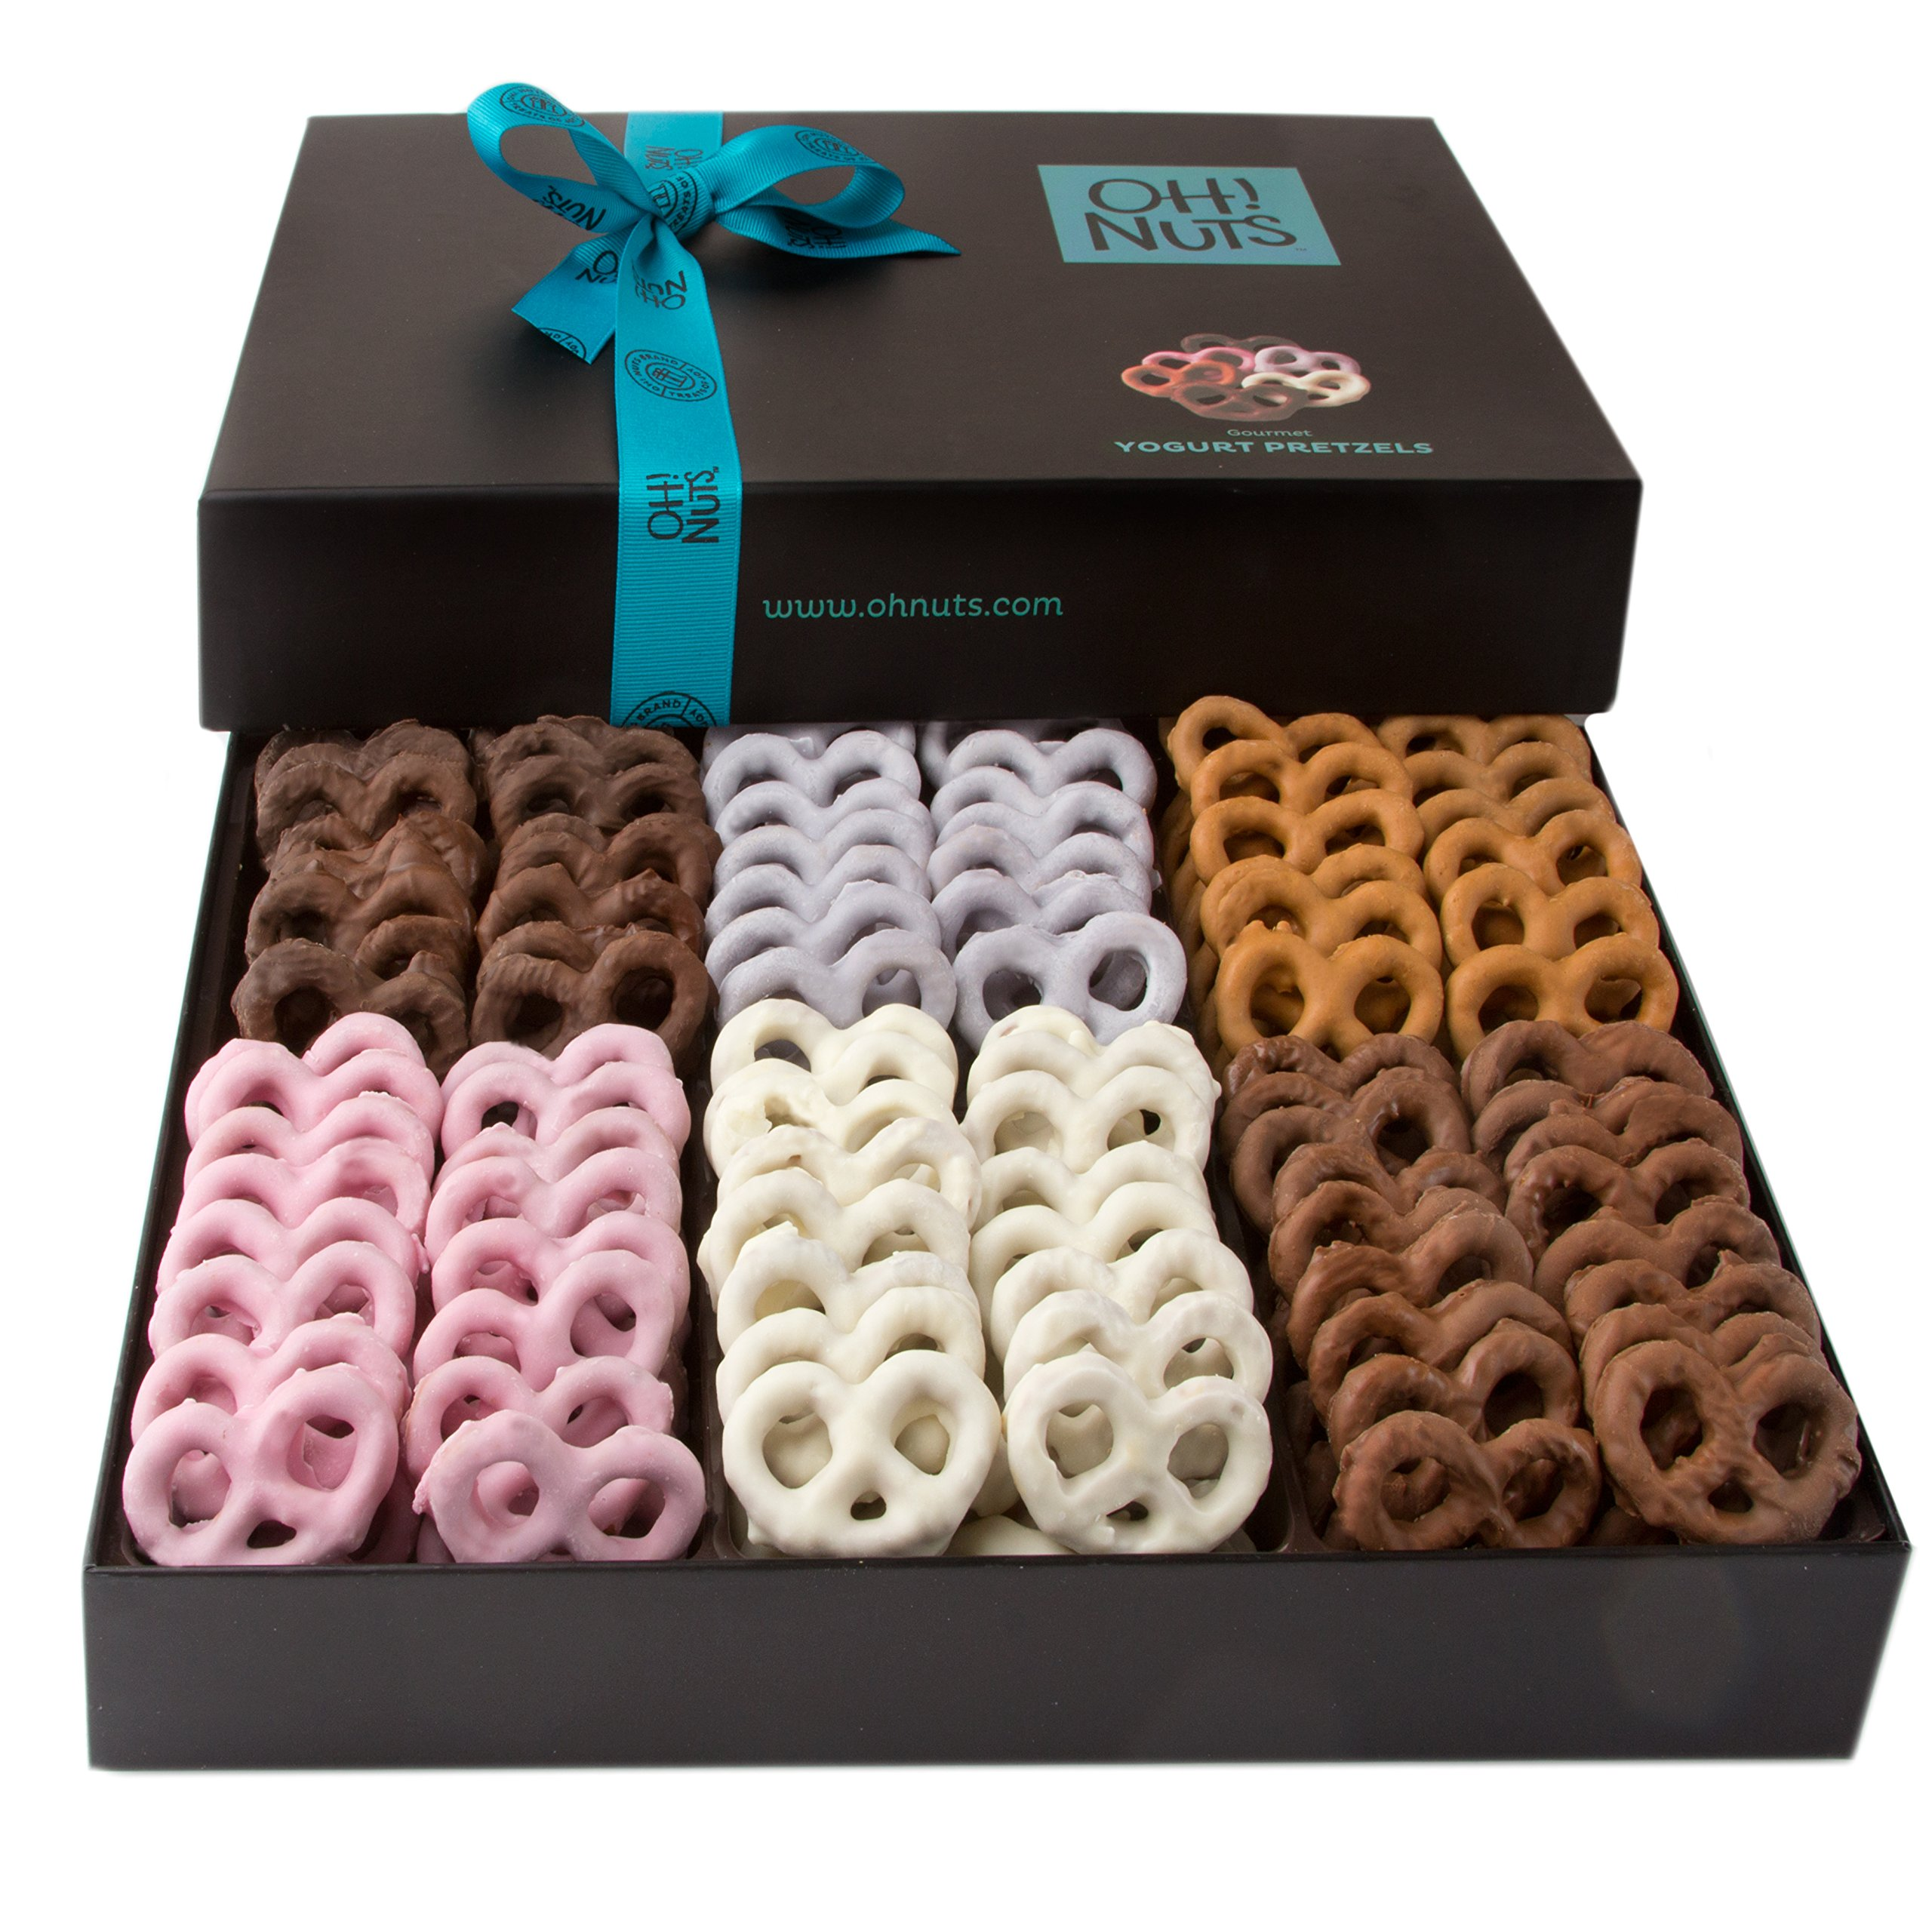 Oh! Nuts Chocolate Covered Pretzels Gift Basket, 6 Variety Assorted Flavored Set of Yogurt, Milk & Dark Gift Box, Send for Christmas Holiday Valentine's or Mother's Day a Sweet Treat for Men & Women by Oh! Nuts® (Image #1)